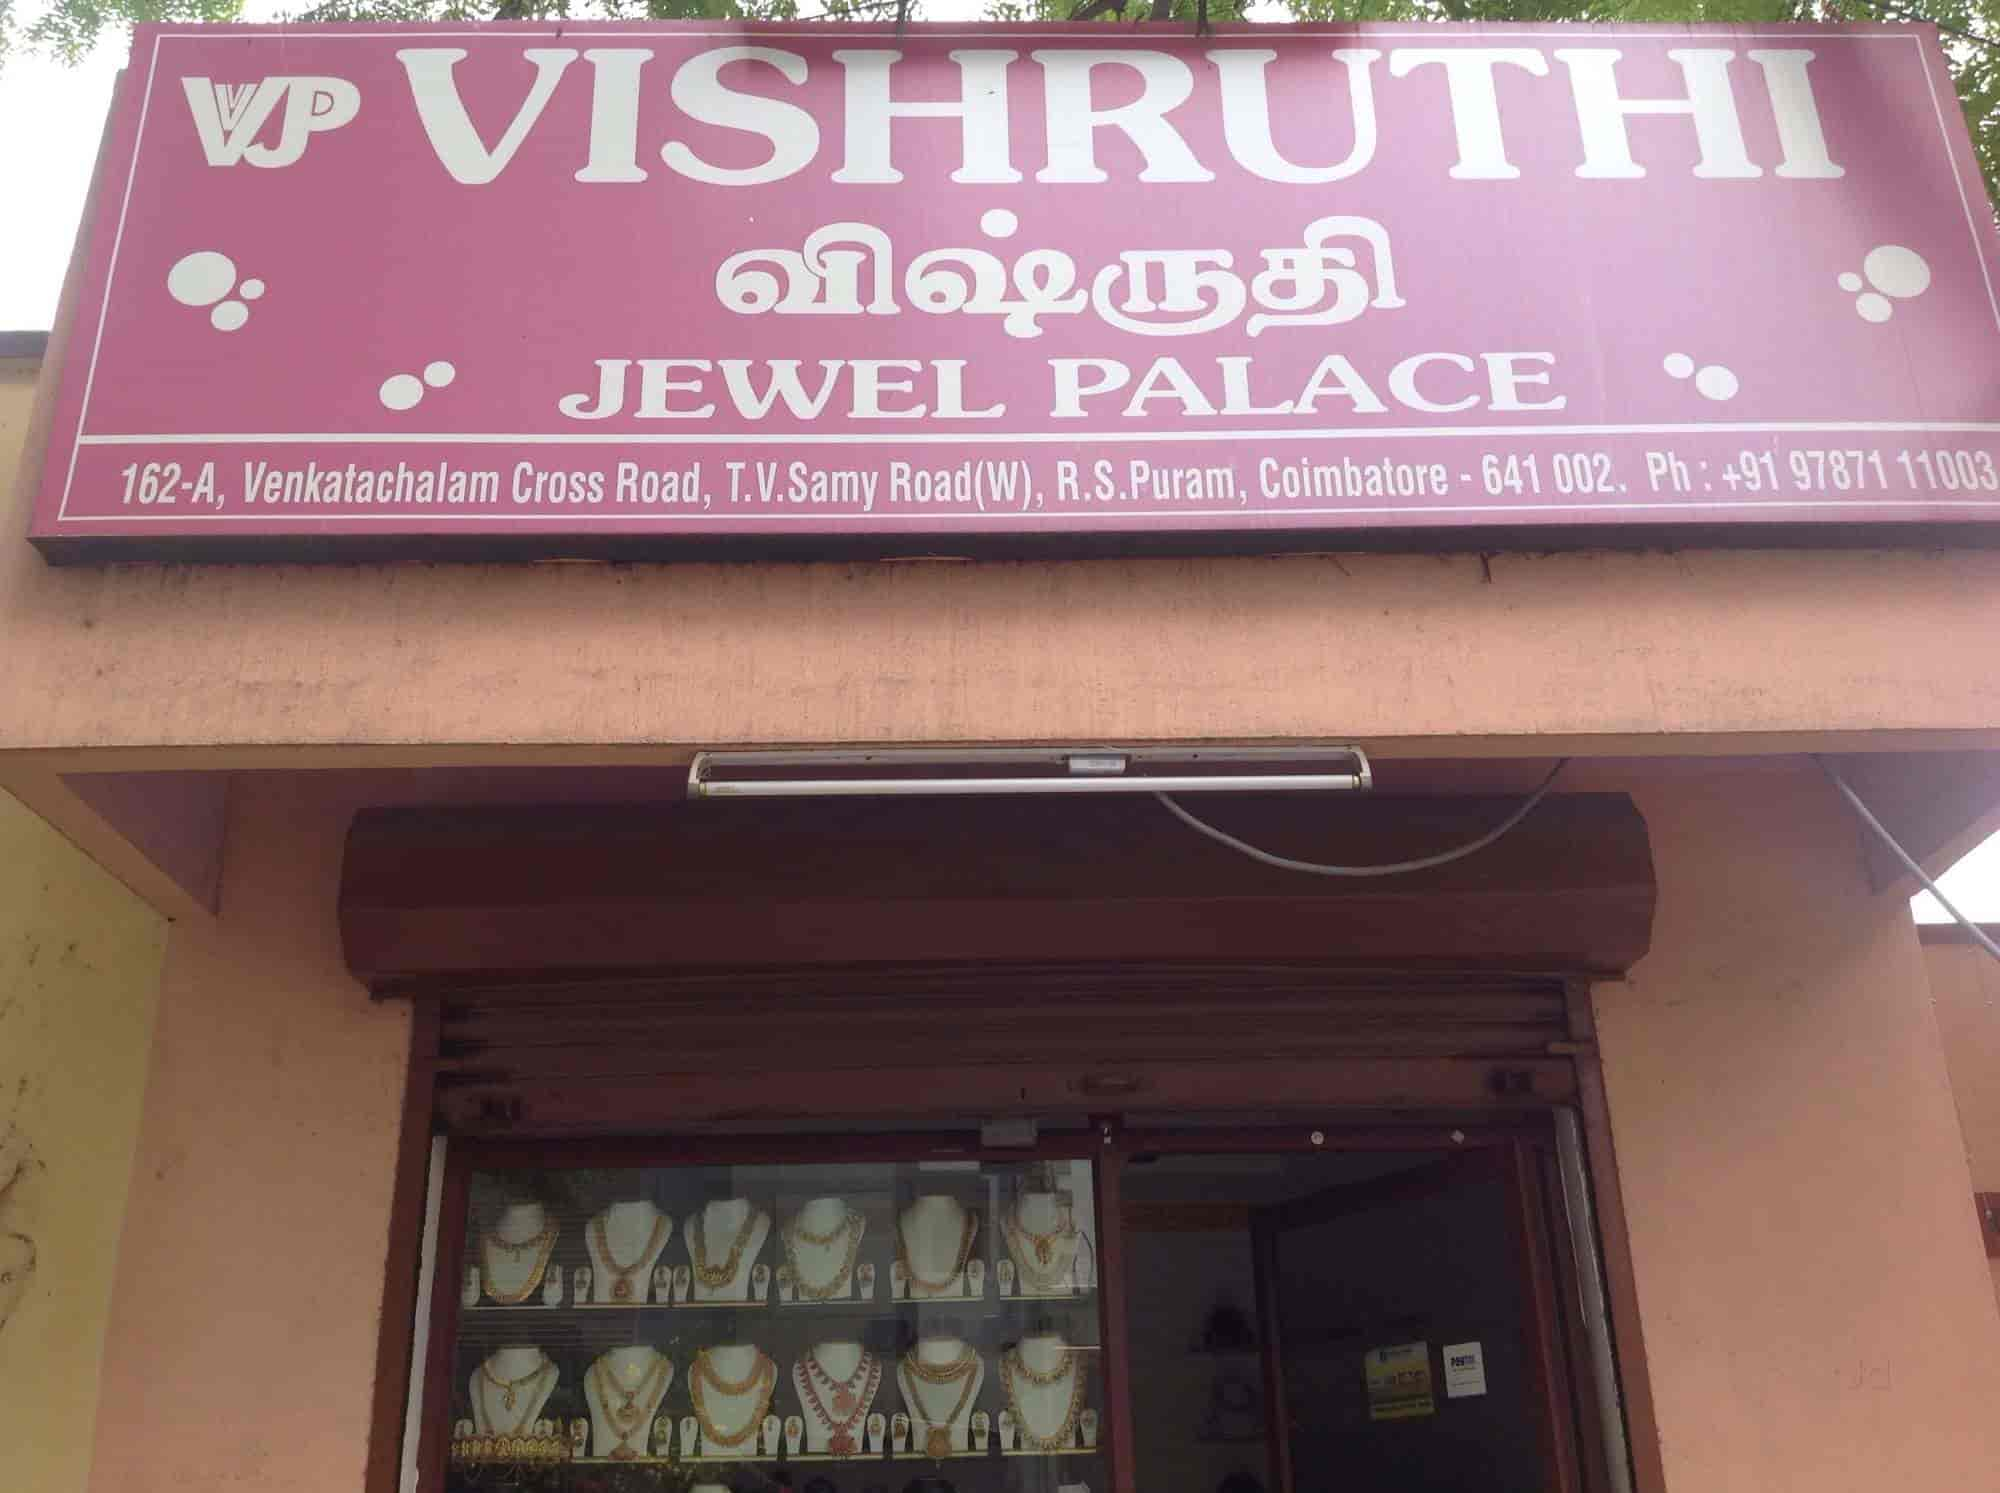 Vishruthi Jewel Palace, R S Puram - Jewellery Showrooms in